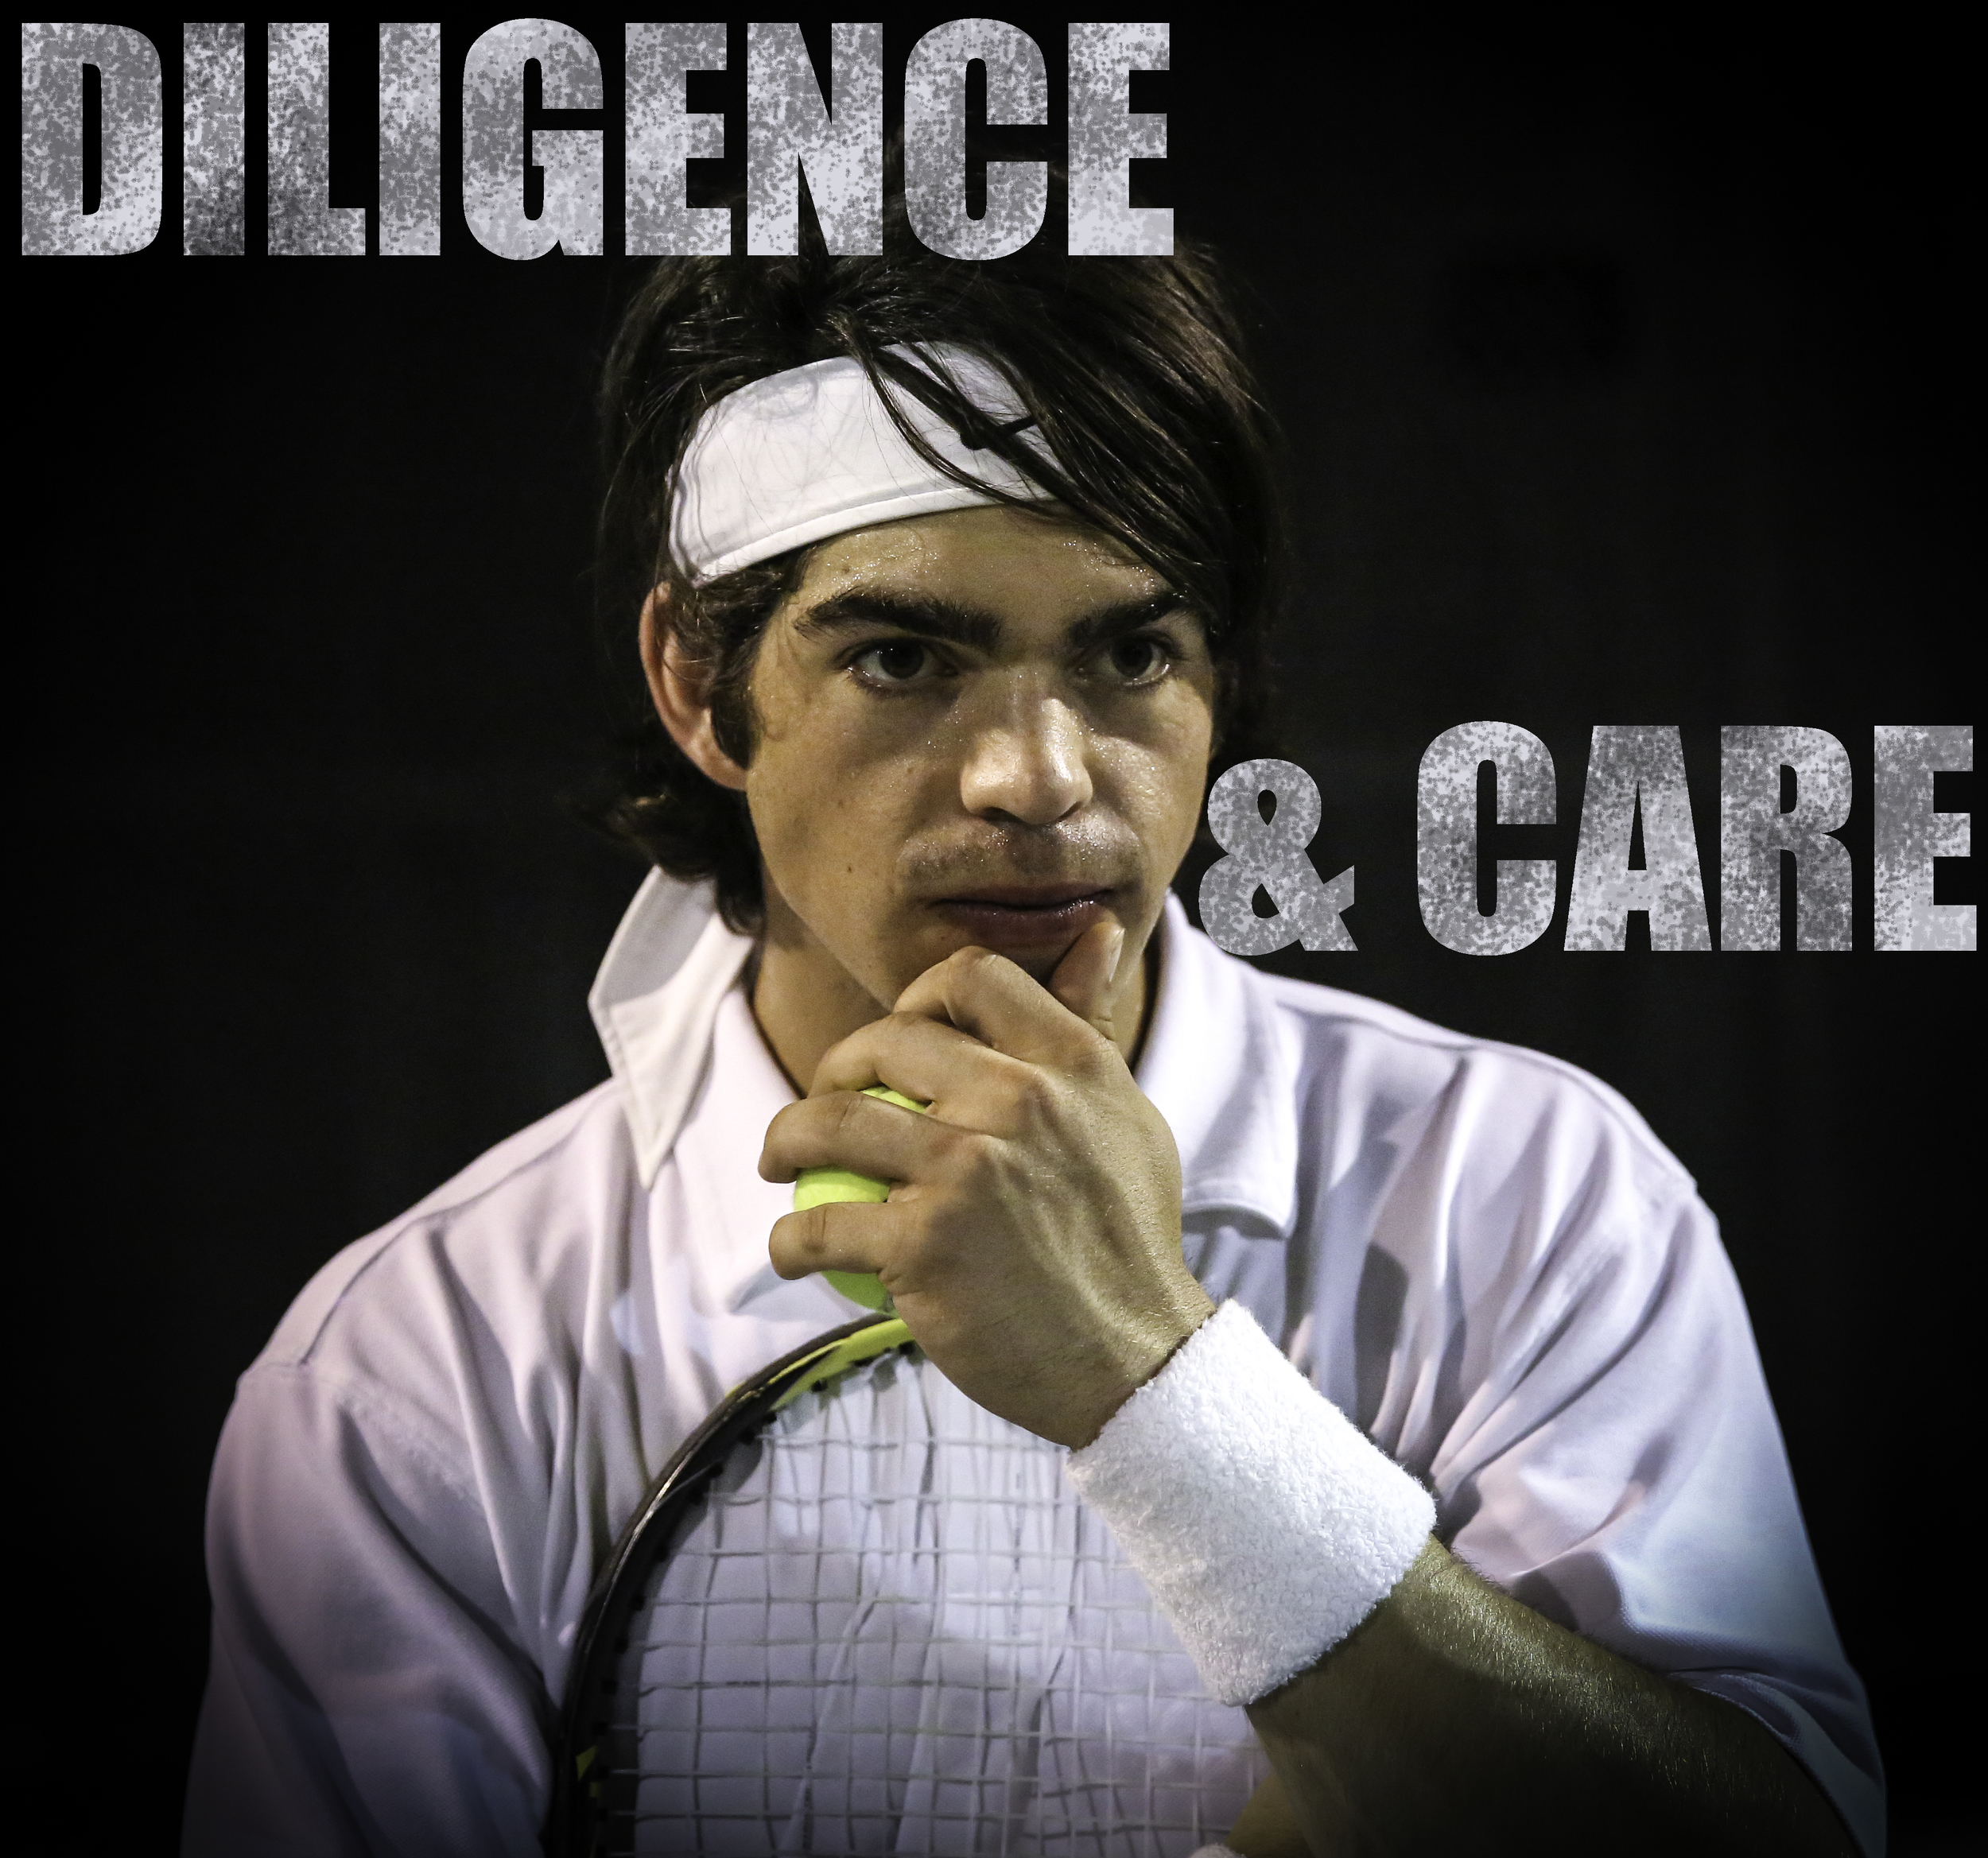 DILIGENCE AND CARE.jpg